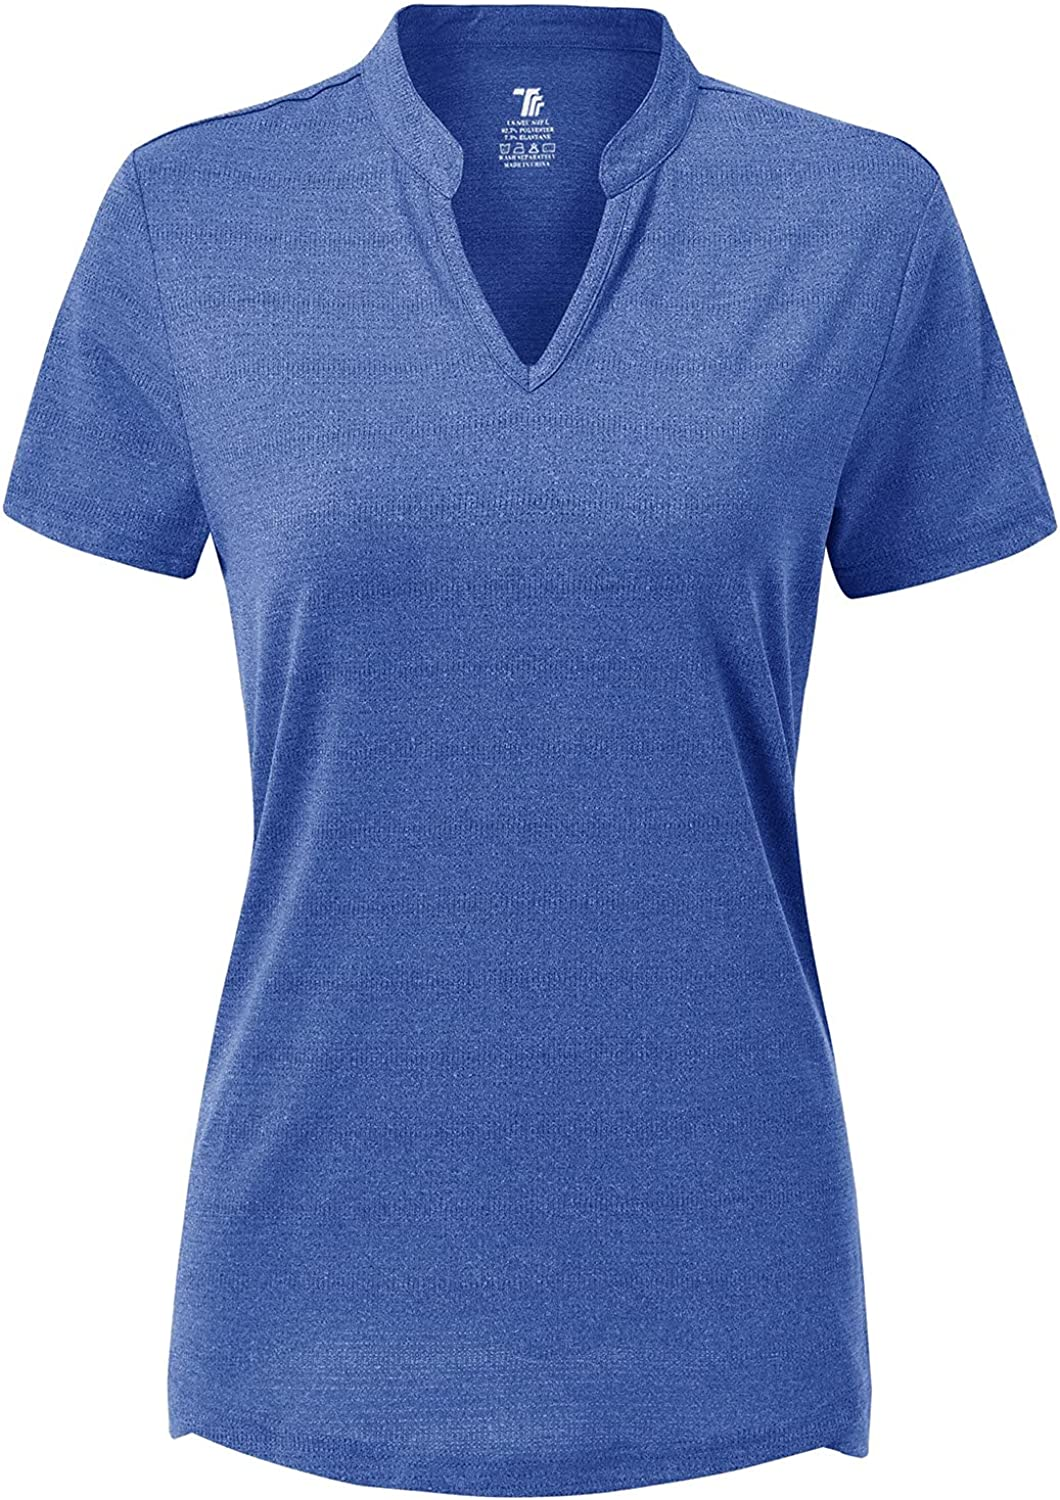 BGOWATU Special Campaign Women's Short Sleeve Golf V-Neck Super special price Polo Collar Shirts